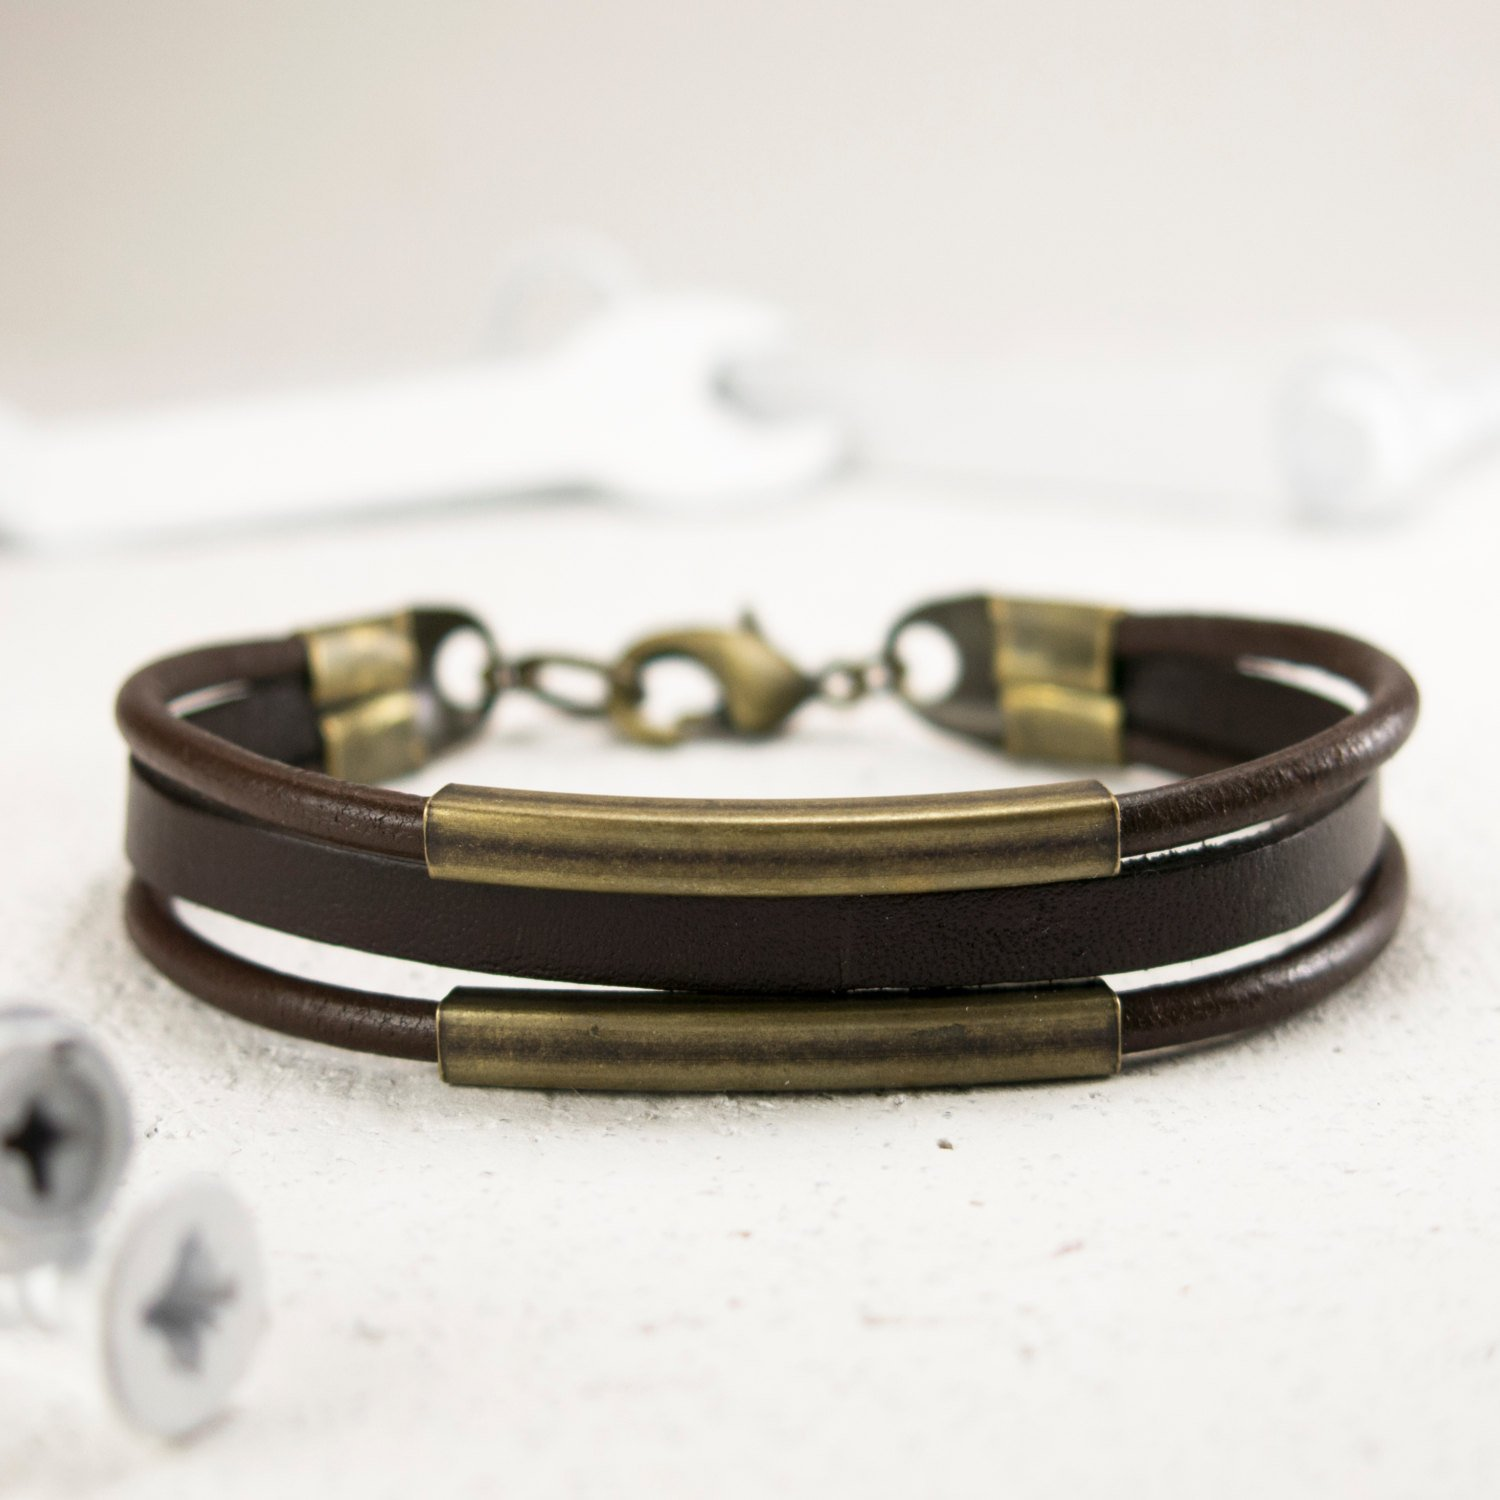 Men's Bracelet - Men's Leather Bracelet - Men's Cuff Bracelet - Men's Jewelry - Guys Jewelry - Guys Bracelet - Jewelry For Men - Bracelets For Men - Male Jewelry - Male Bracelet